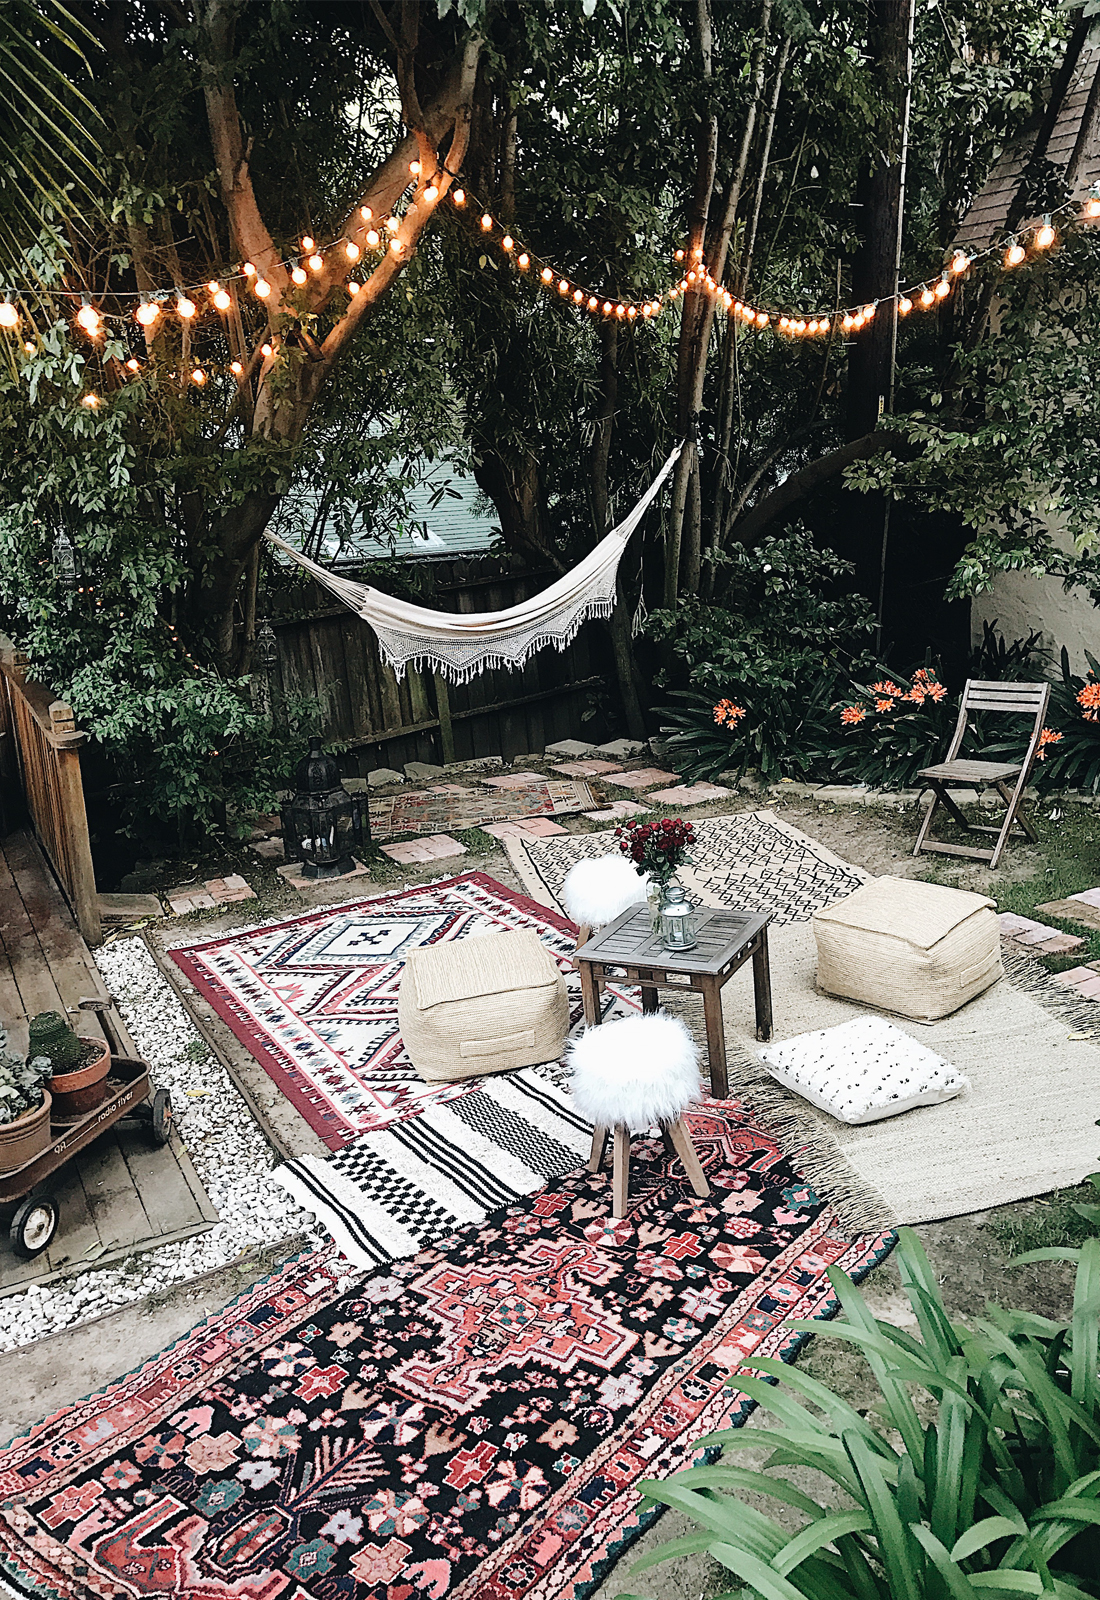 Outdoor Living Inspiration - How we planned our backyard space - That Homebird Life Blog